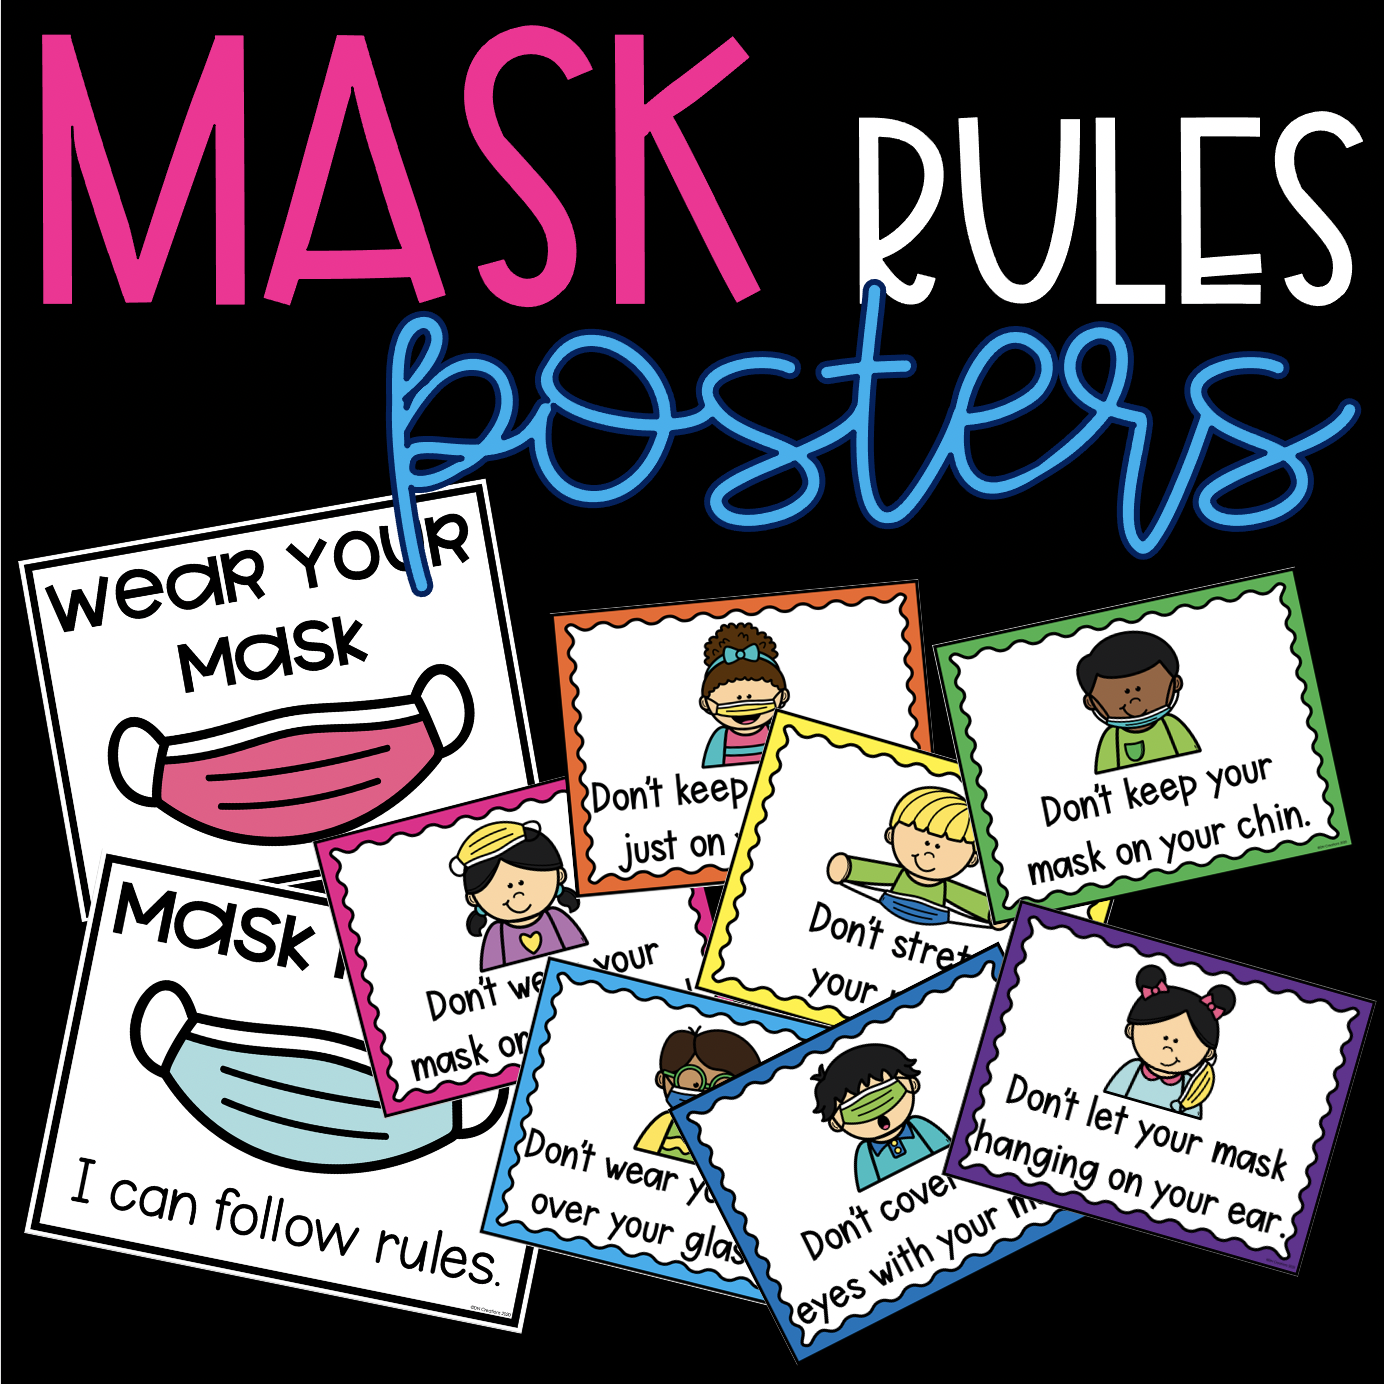 Mask Rules Poster